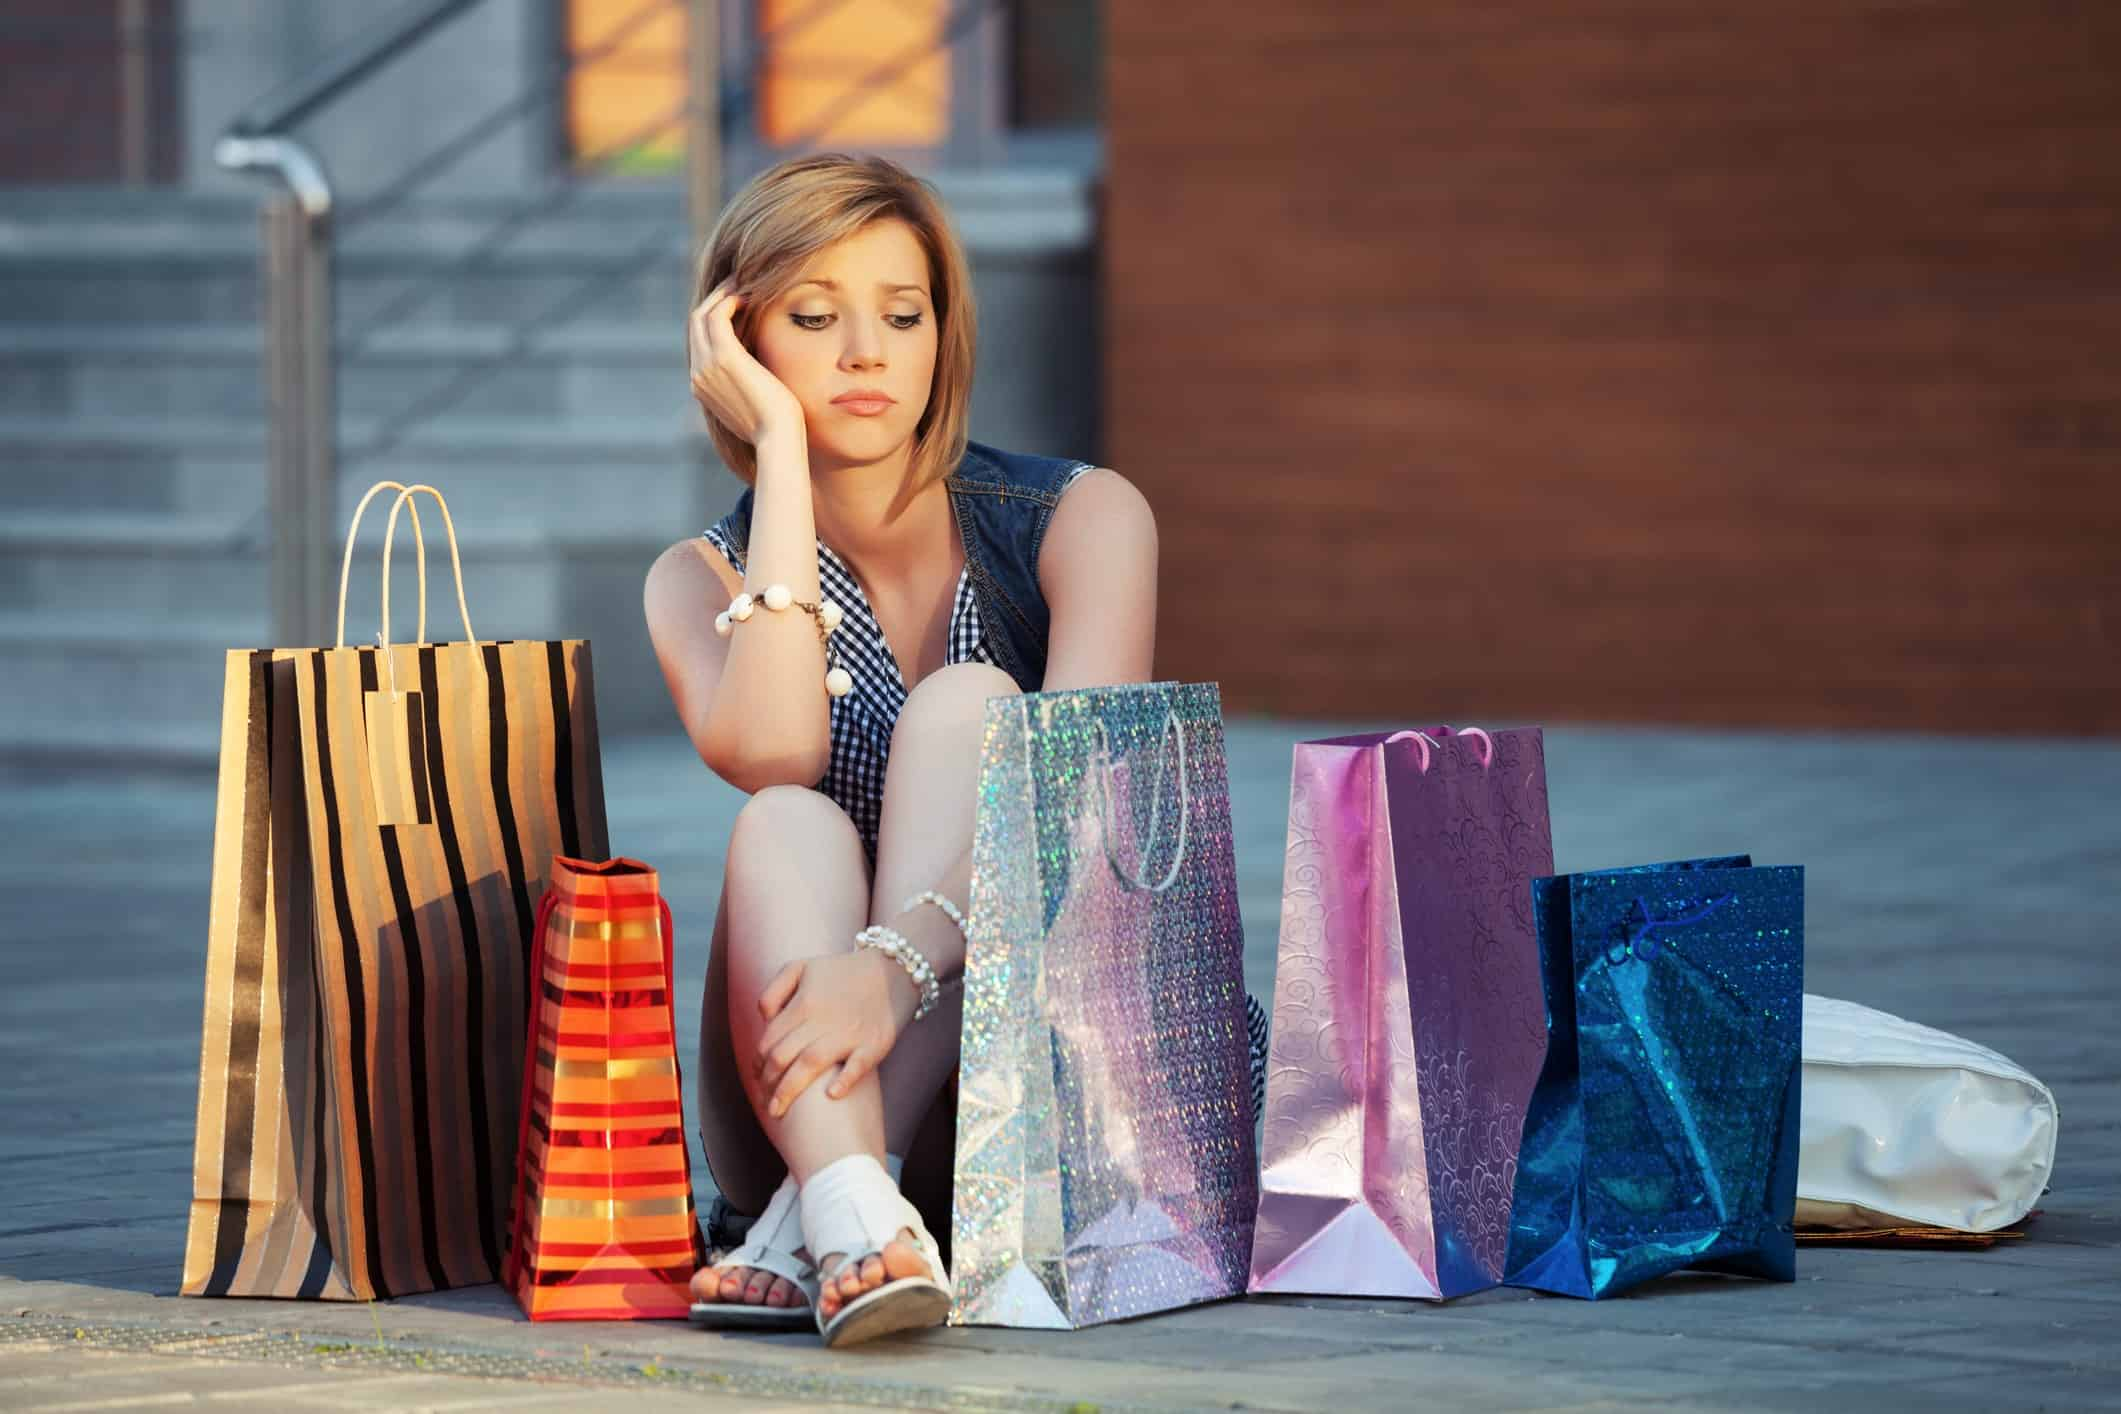 sad person with many shopping bags, buy now pay later